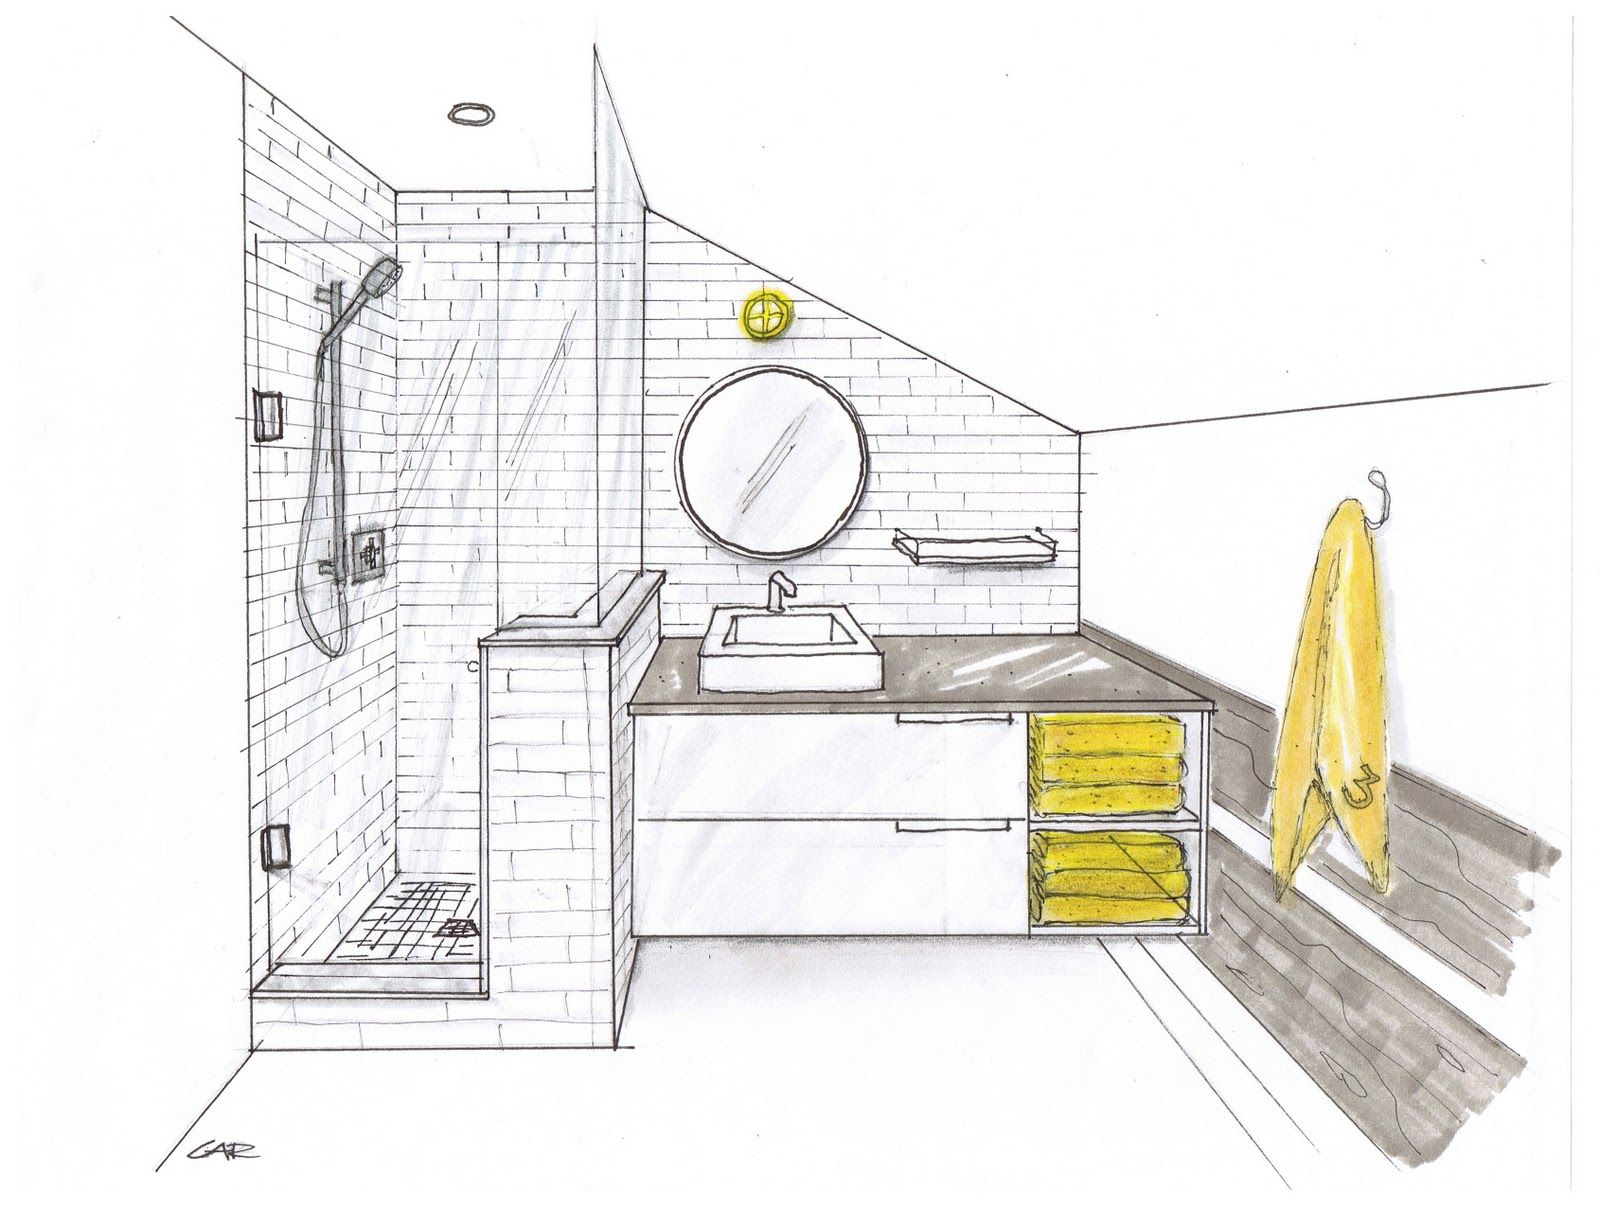 Bathroom sink drawing - Bathroom One Point Perspective Google Search Simple Bathrooms One Point Perspective Google Search Art